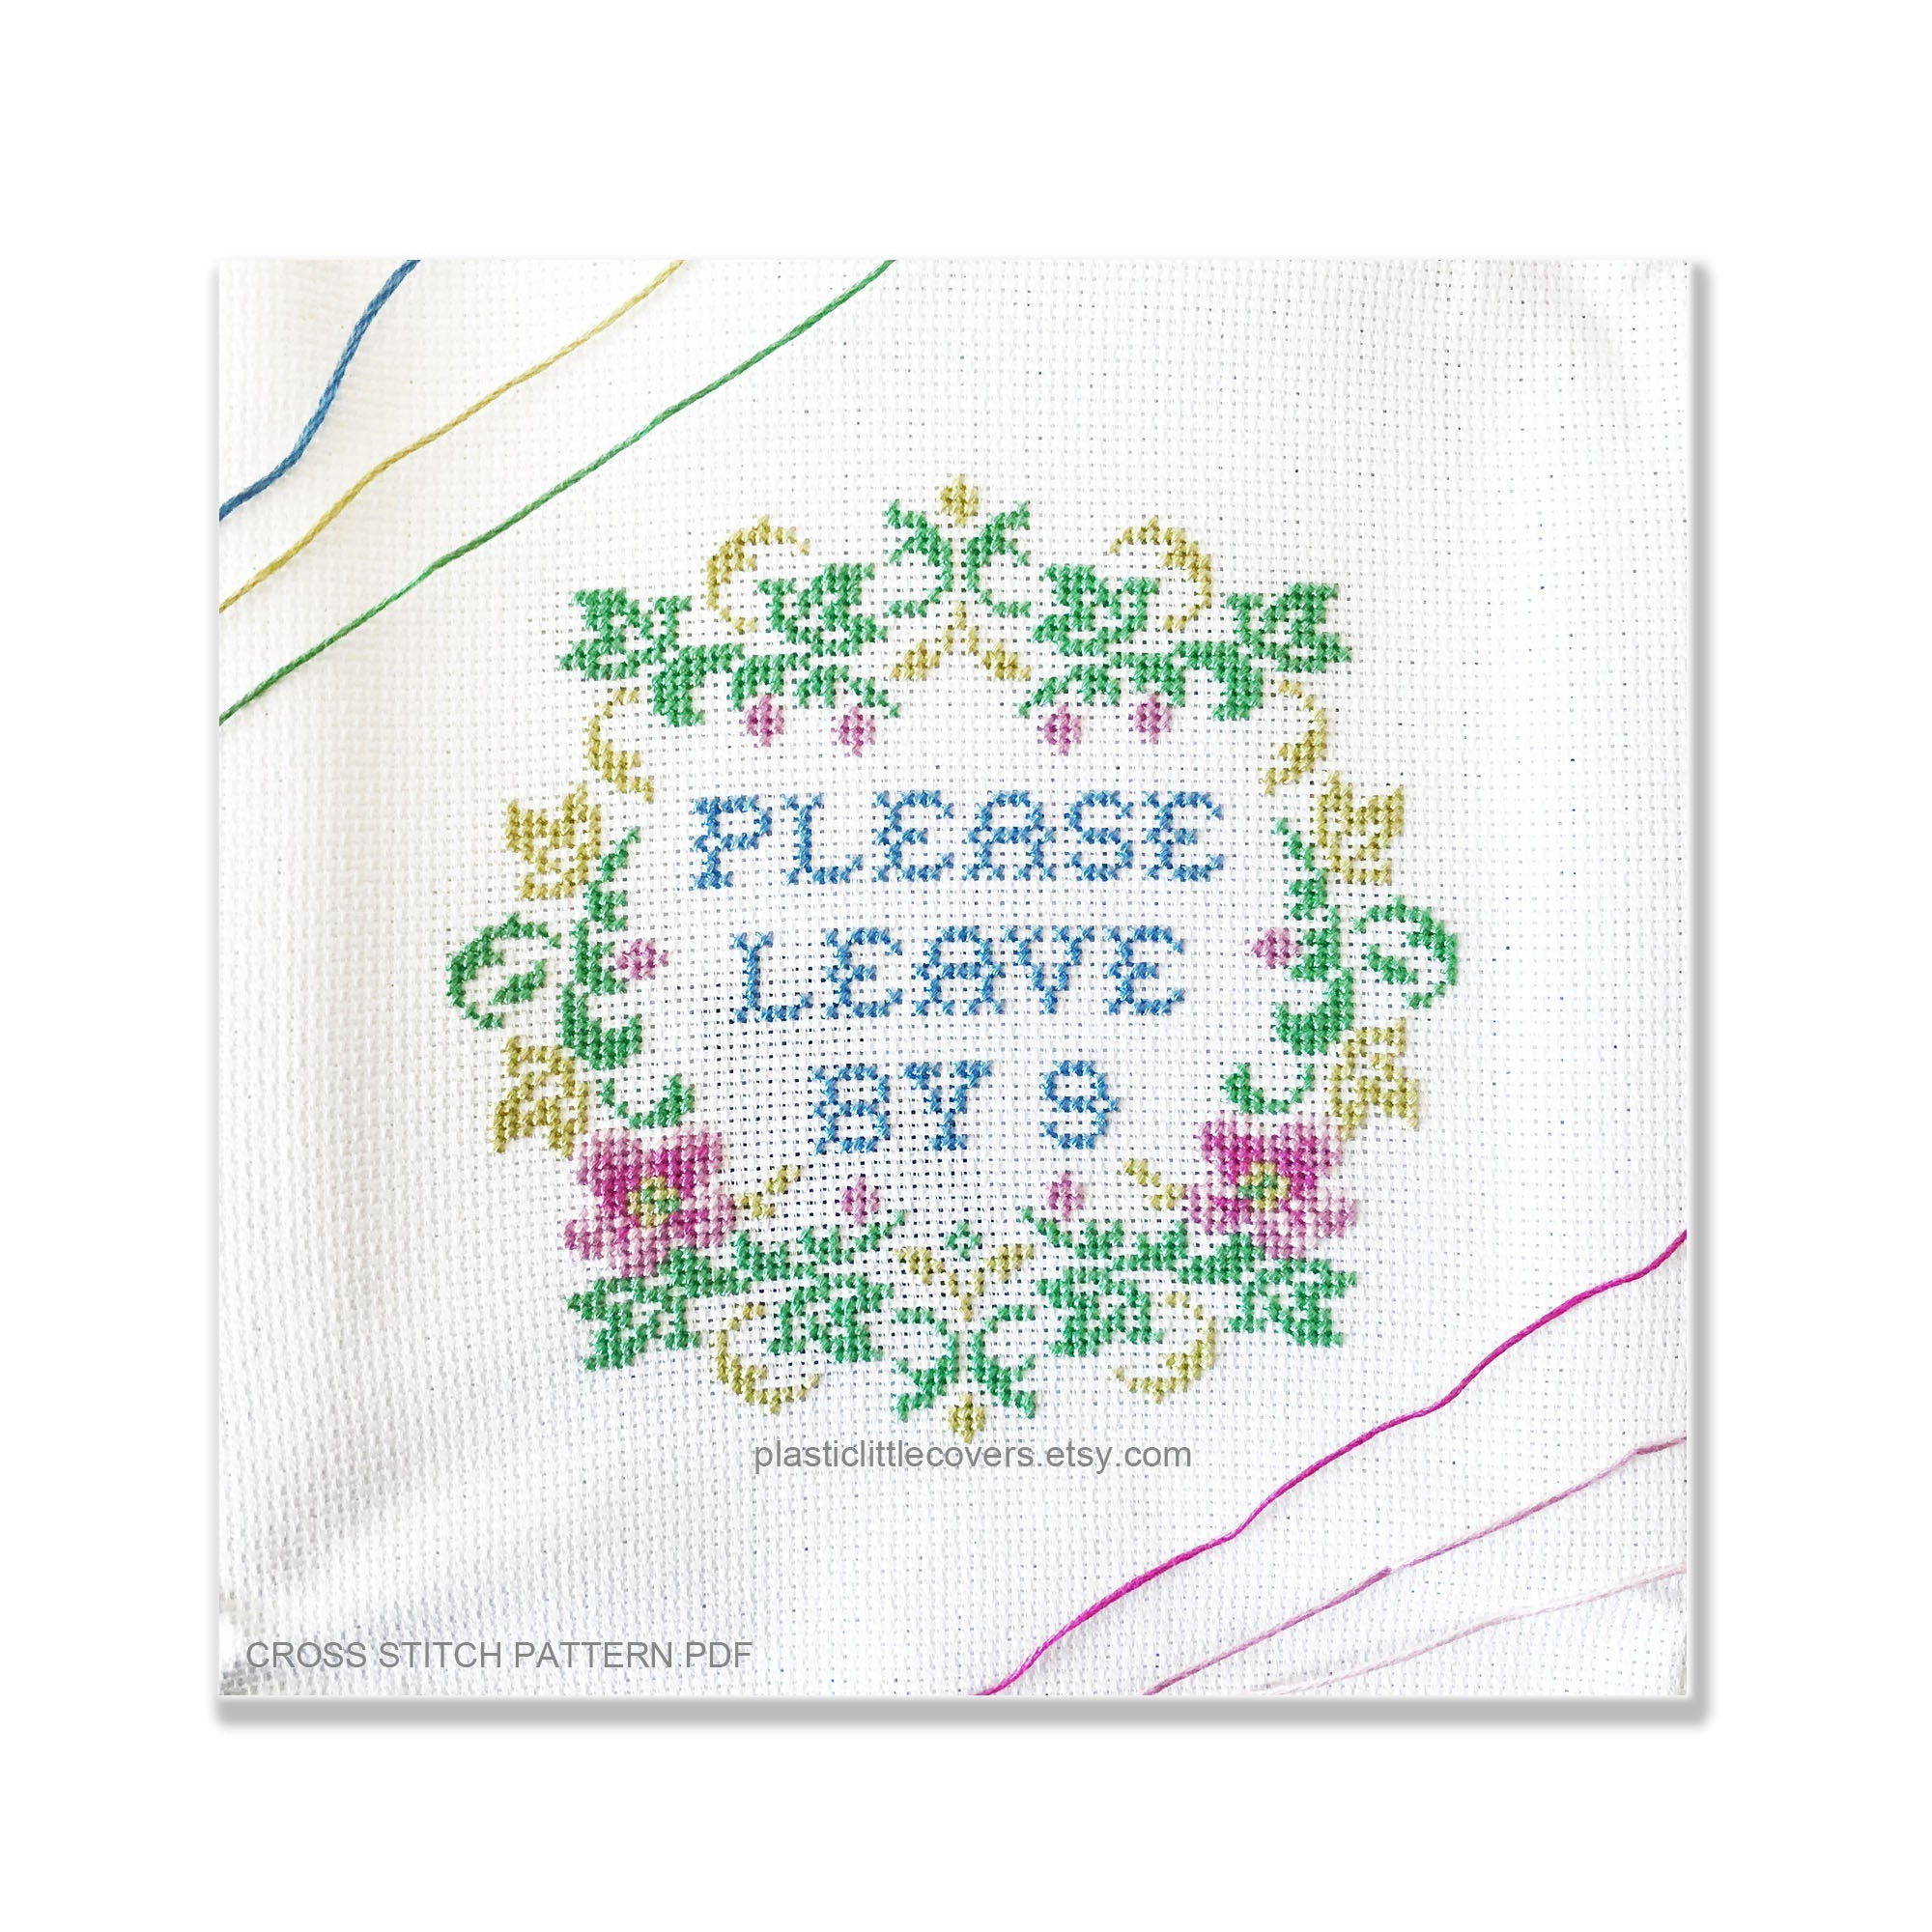 Please Leave By 9 - Cross Stitch Pattern PDF.